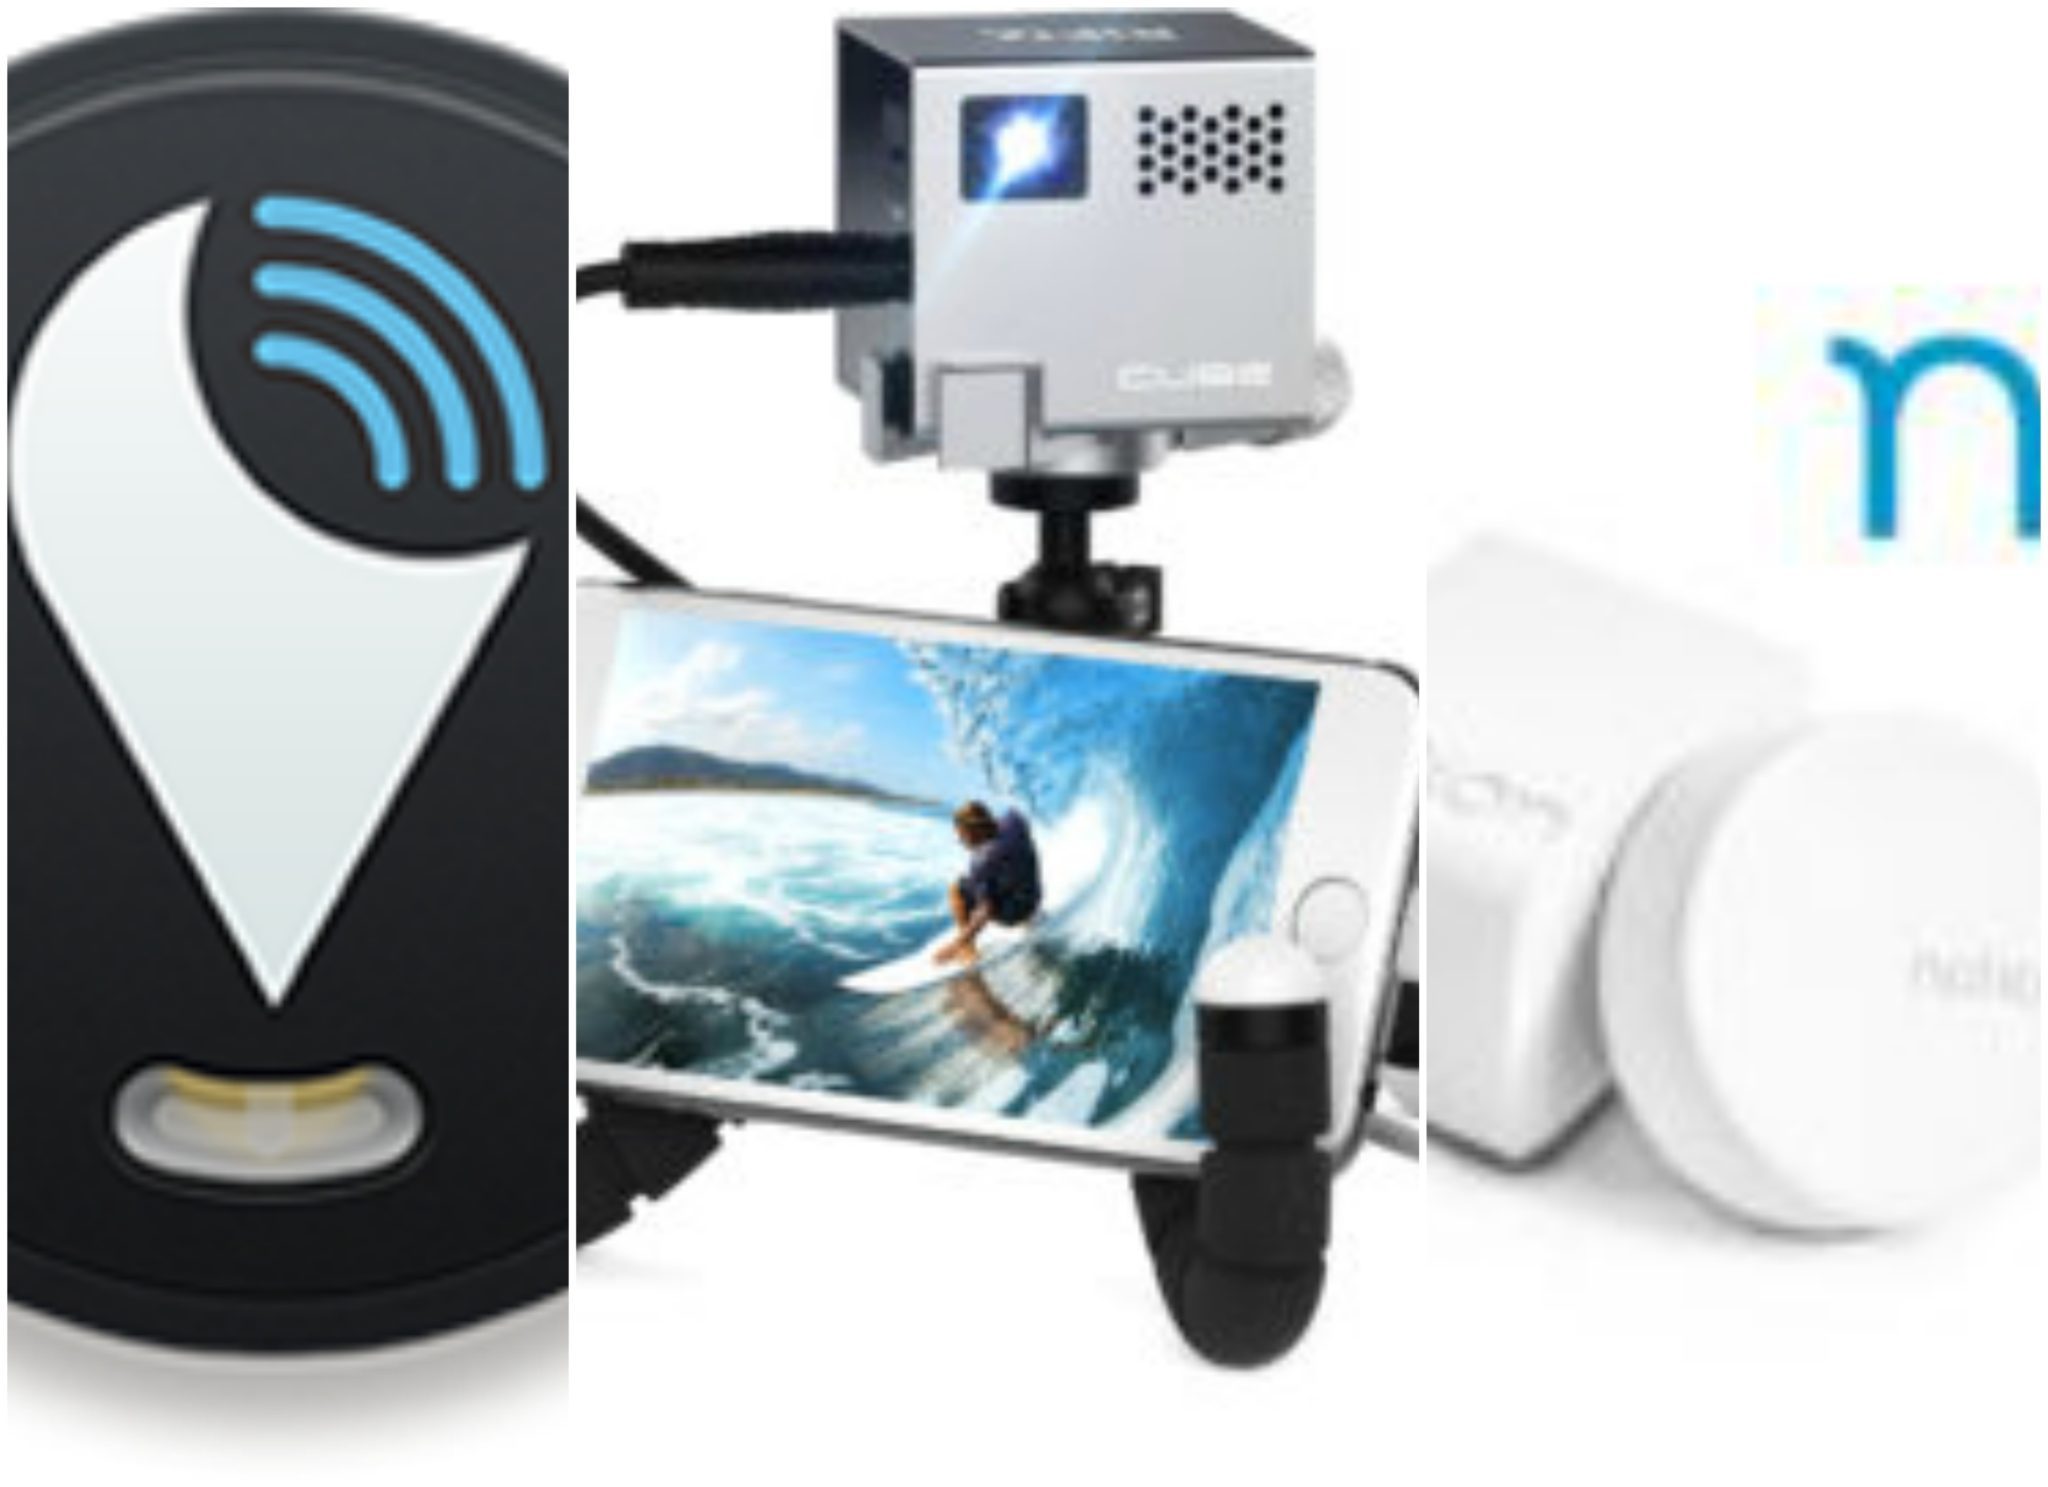 Cool Gadgets – Awesome Gadgets to Buy